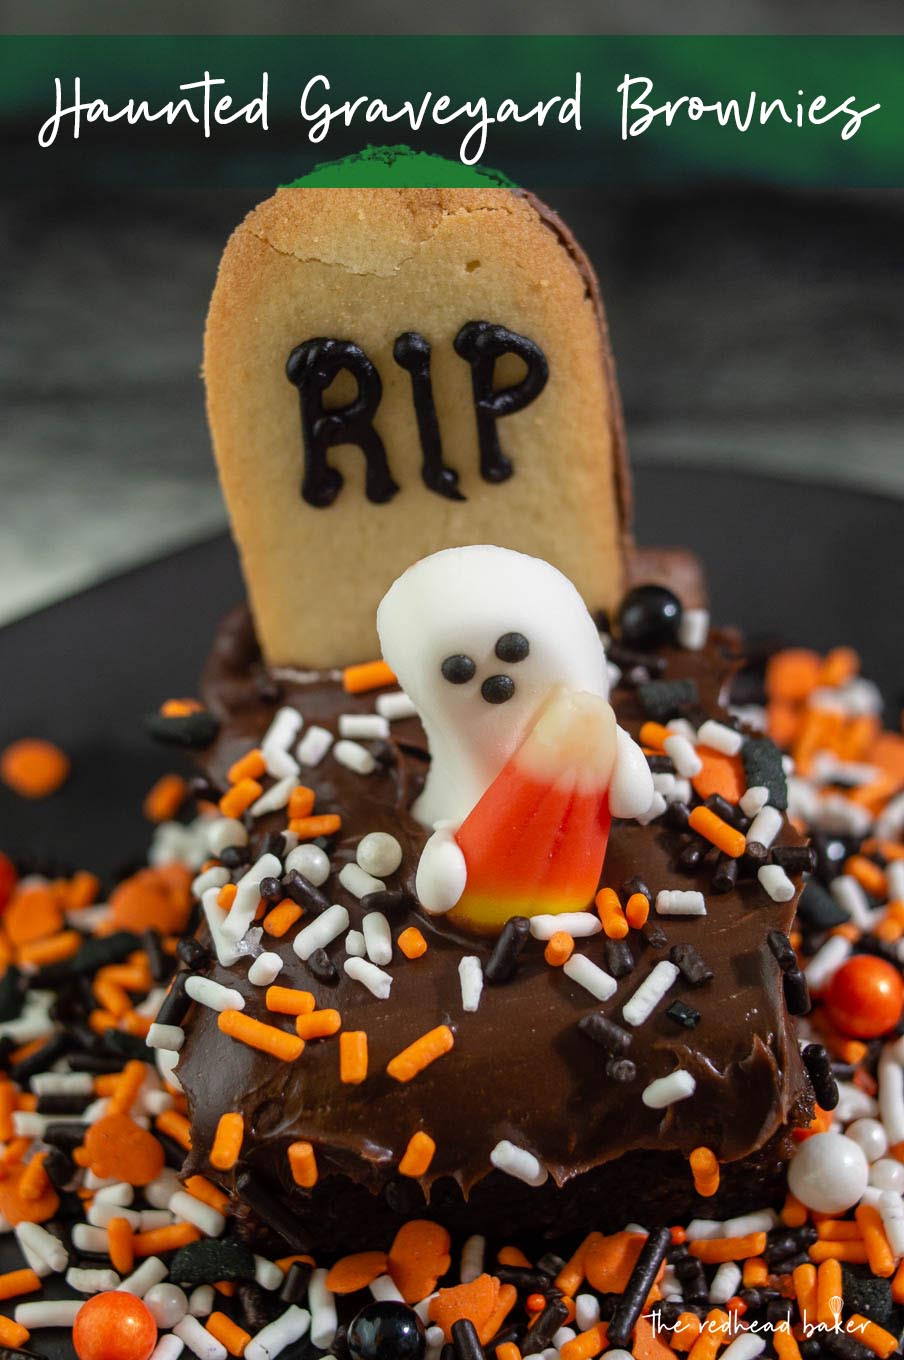 A close-up of a haunted graveyard brownie with orange, black and white sprinkles on a black plate